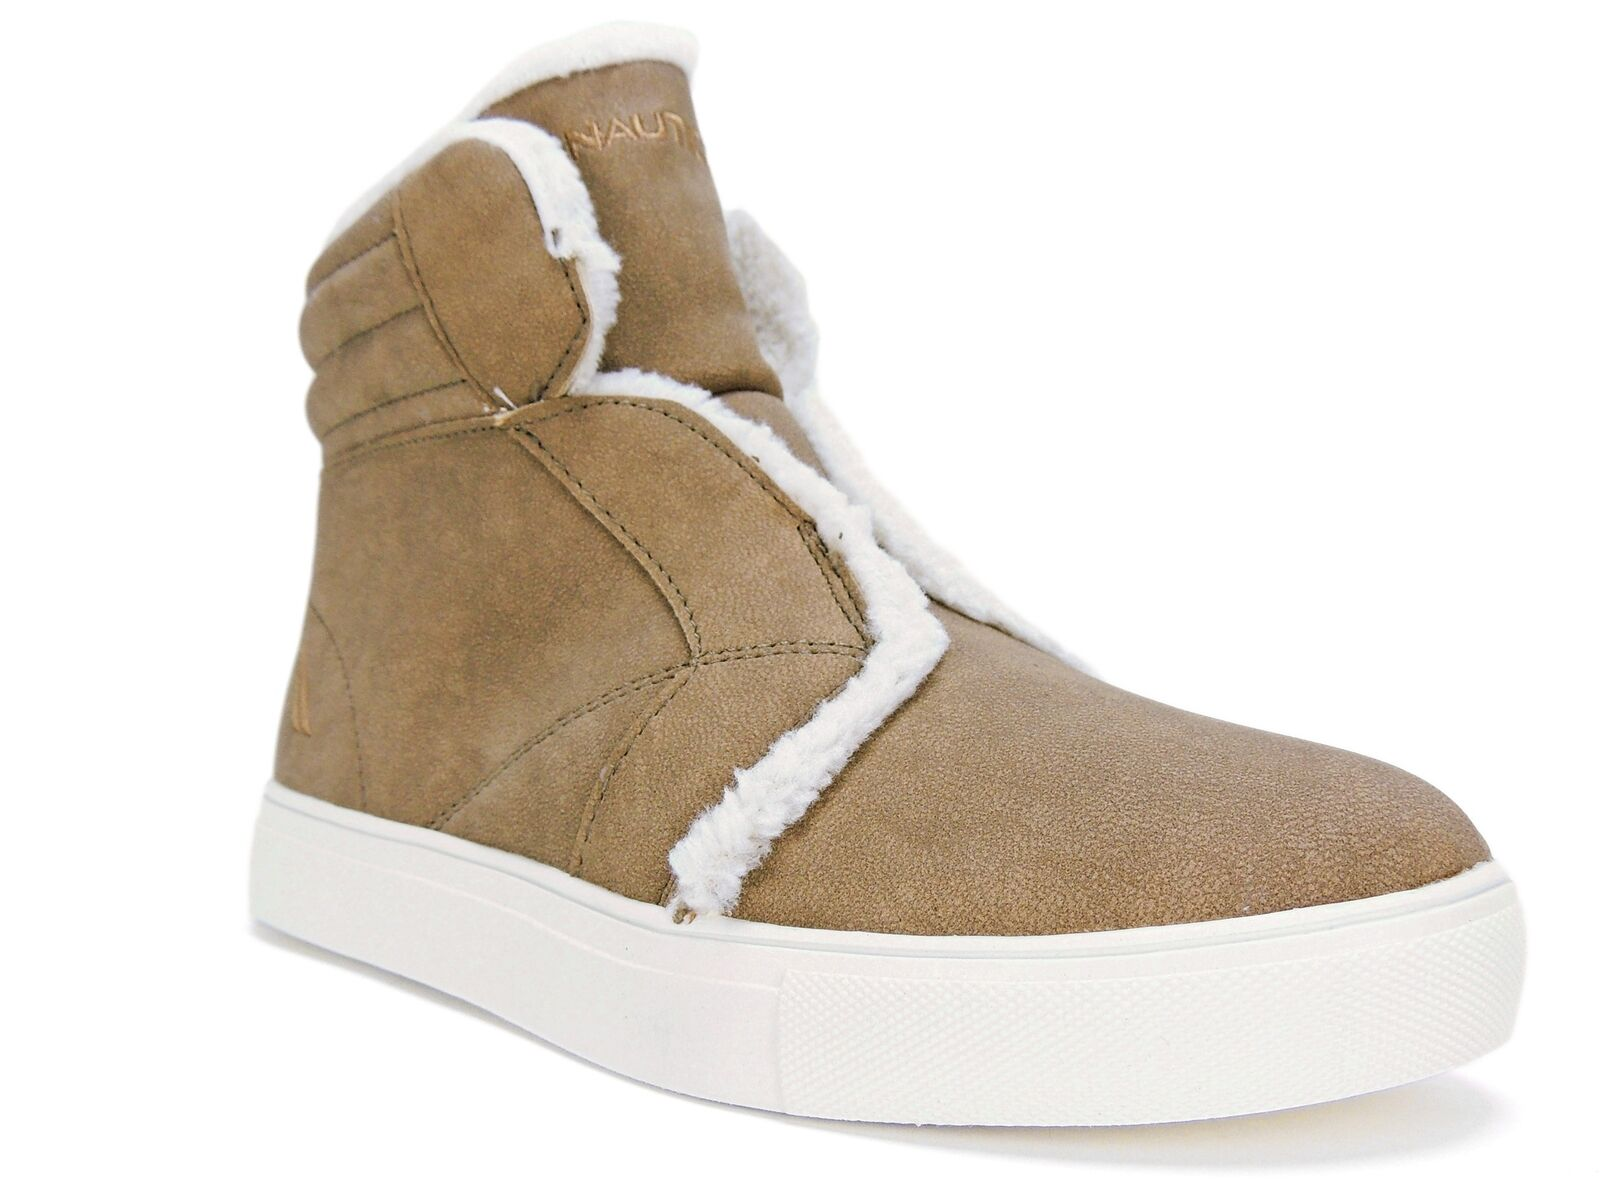 Nautica Women's Kellen High Top Sneakers Athletic Boots Camel Size 7.5 M